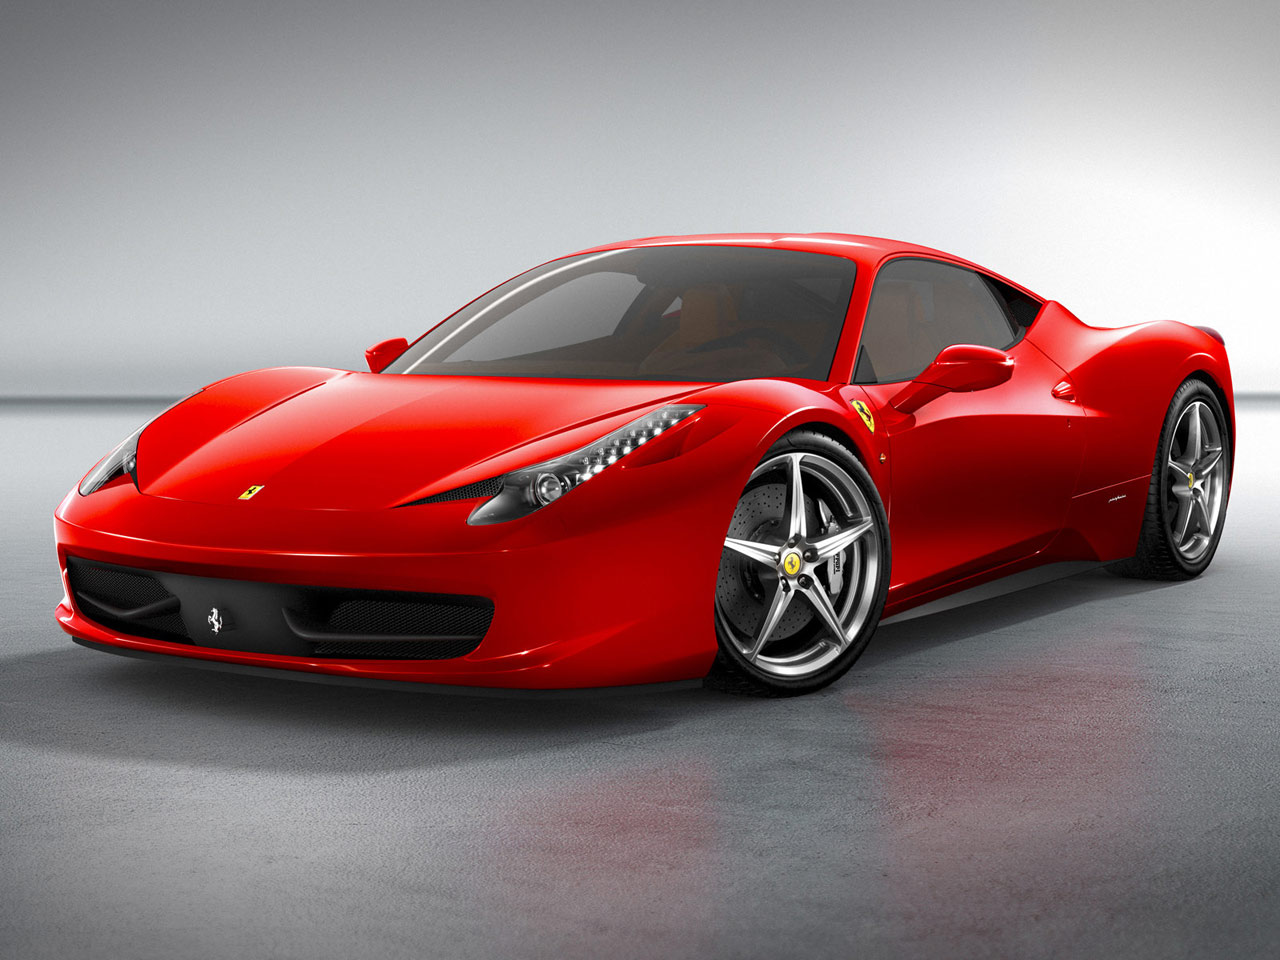 Luxury Ferrari 458 Wallpaper And Photos